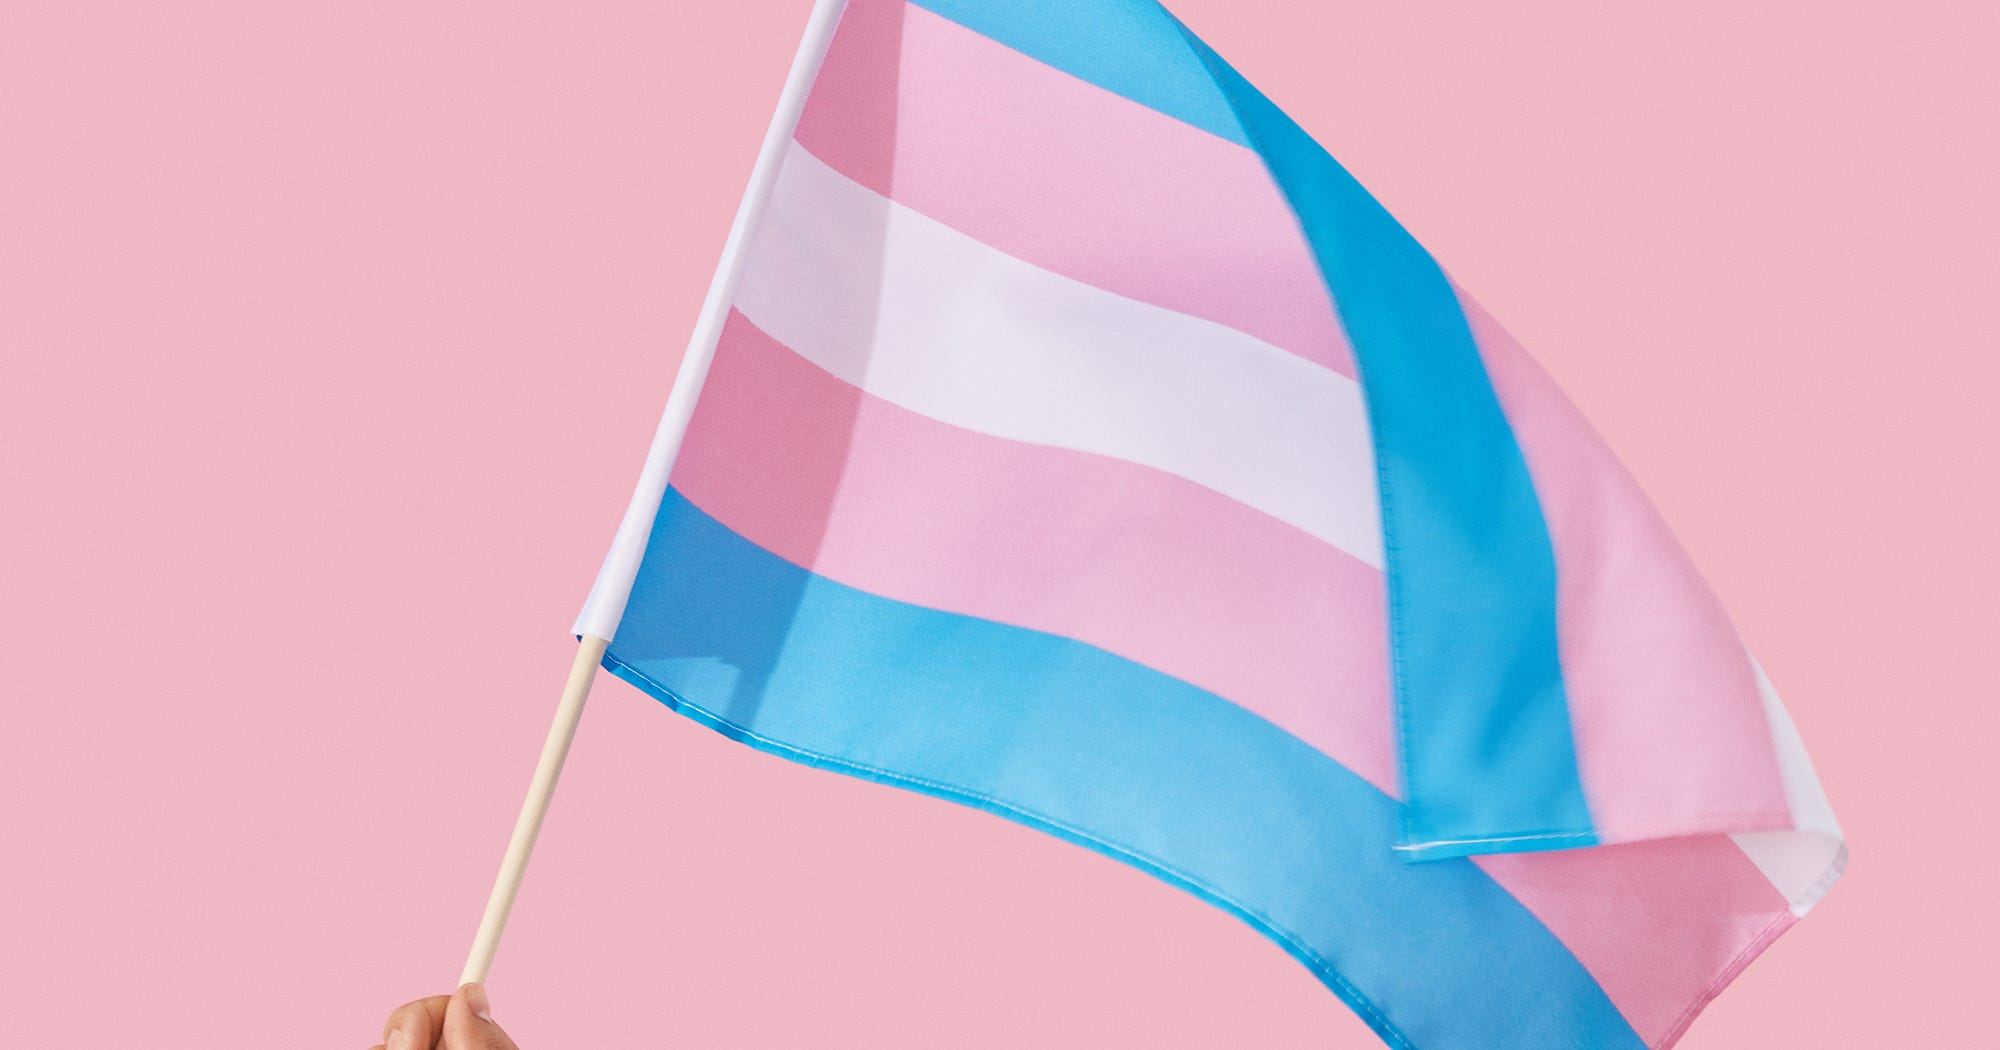 gender and the importance of the It's important to understand both gender and sexual orientation, but how we come to understand these parts of ourselves – and the choices we make to disclose and express them – are distinct paths.